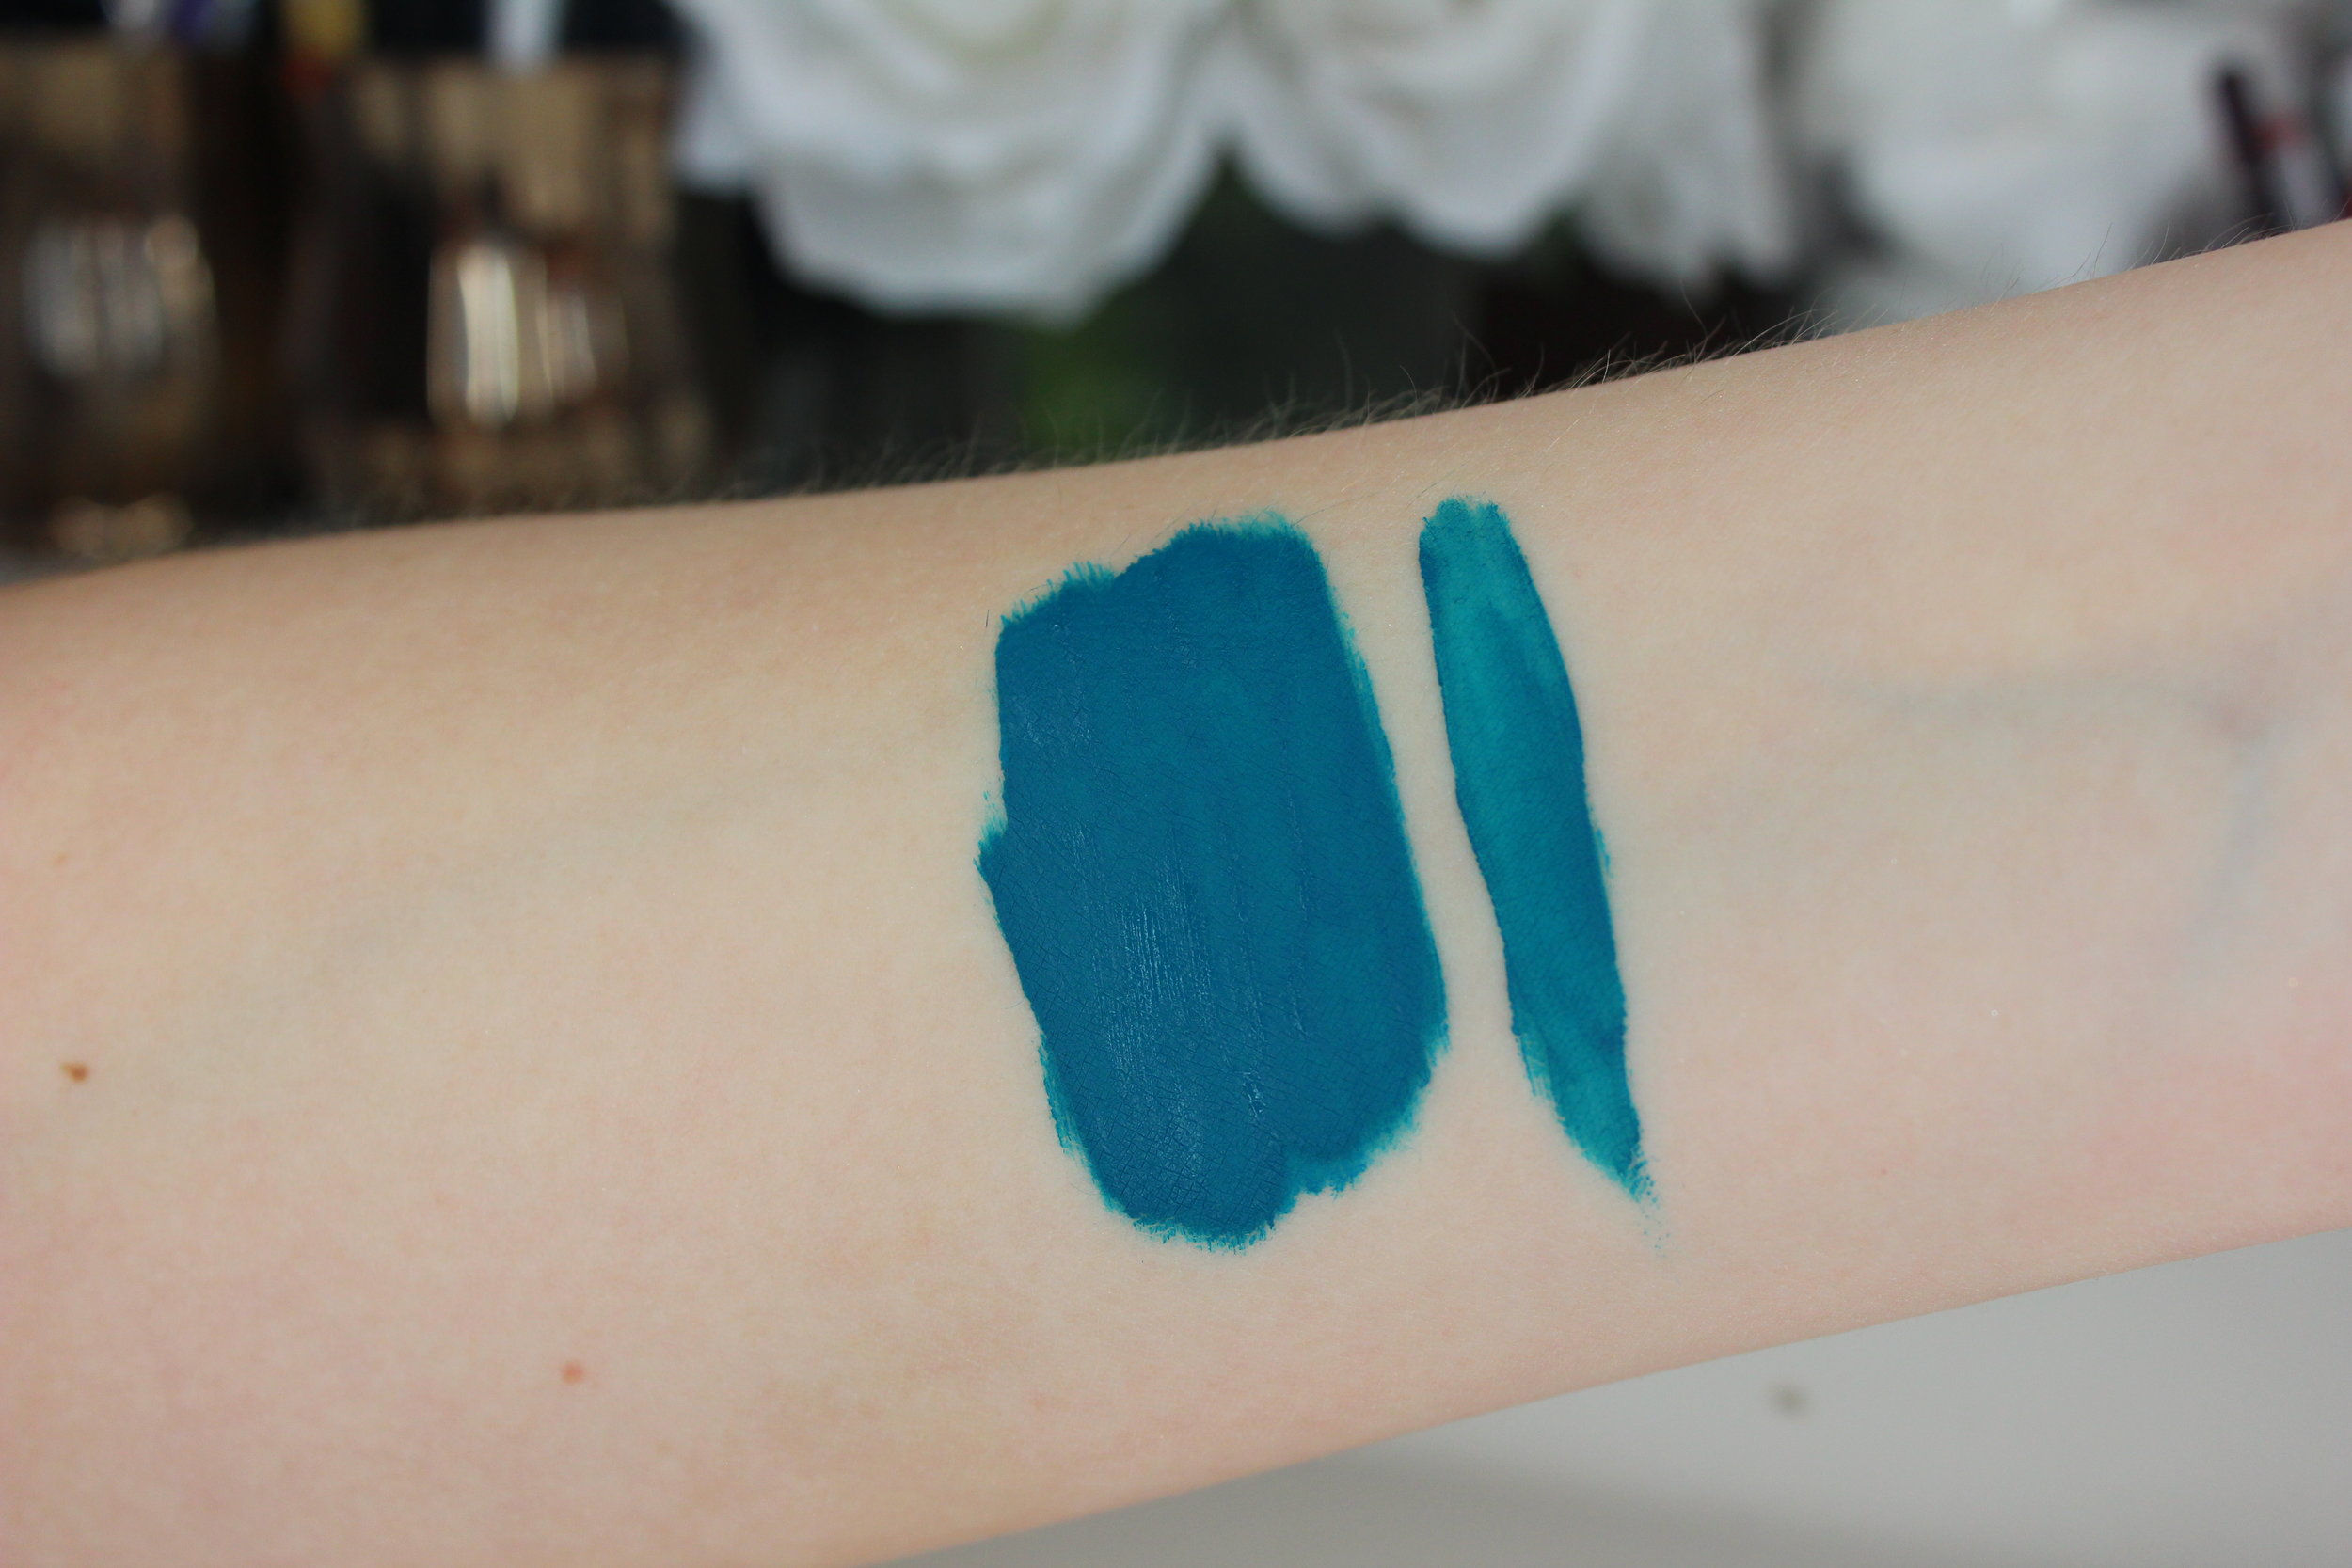 Coloured Raine matte lip paints review - Speechless swatch